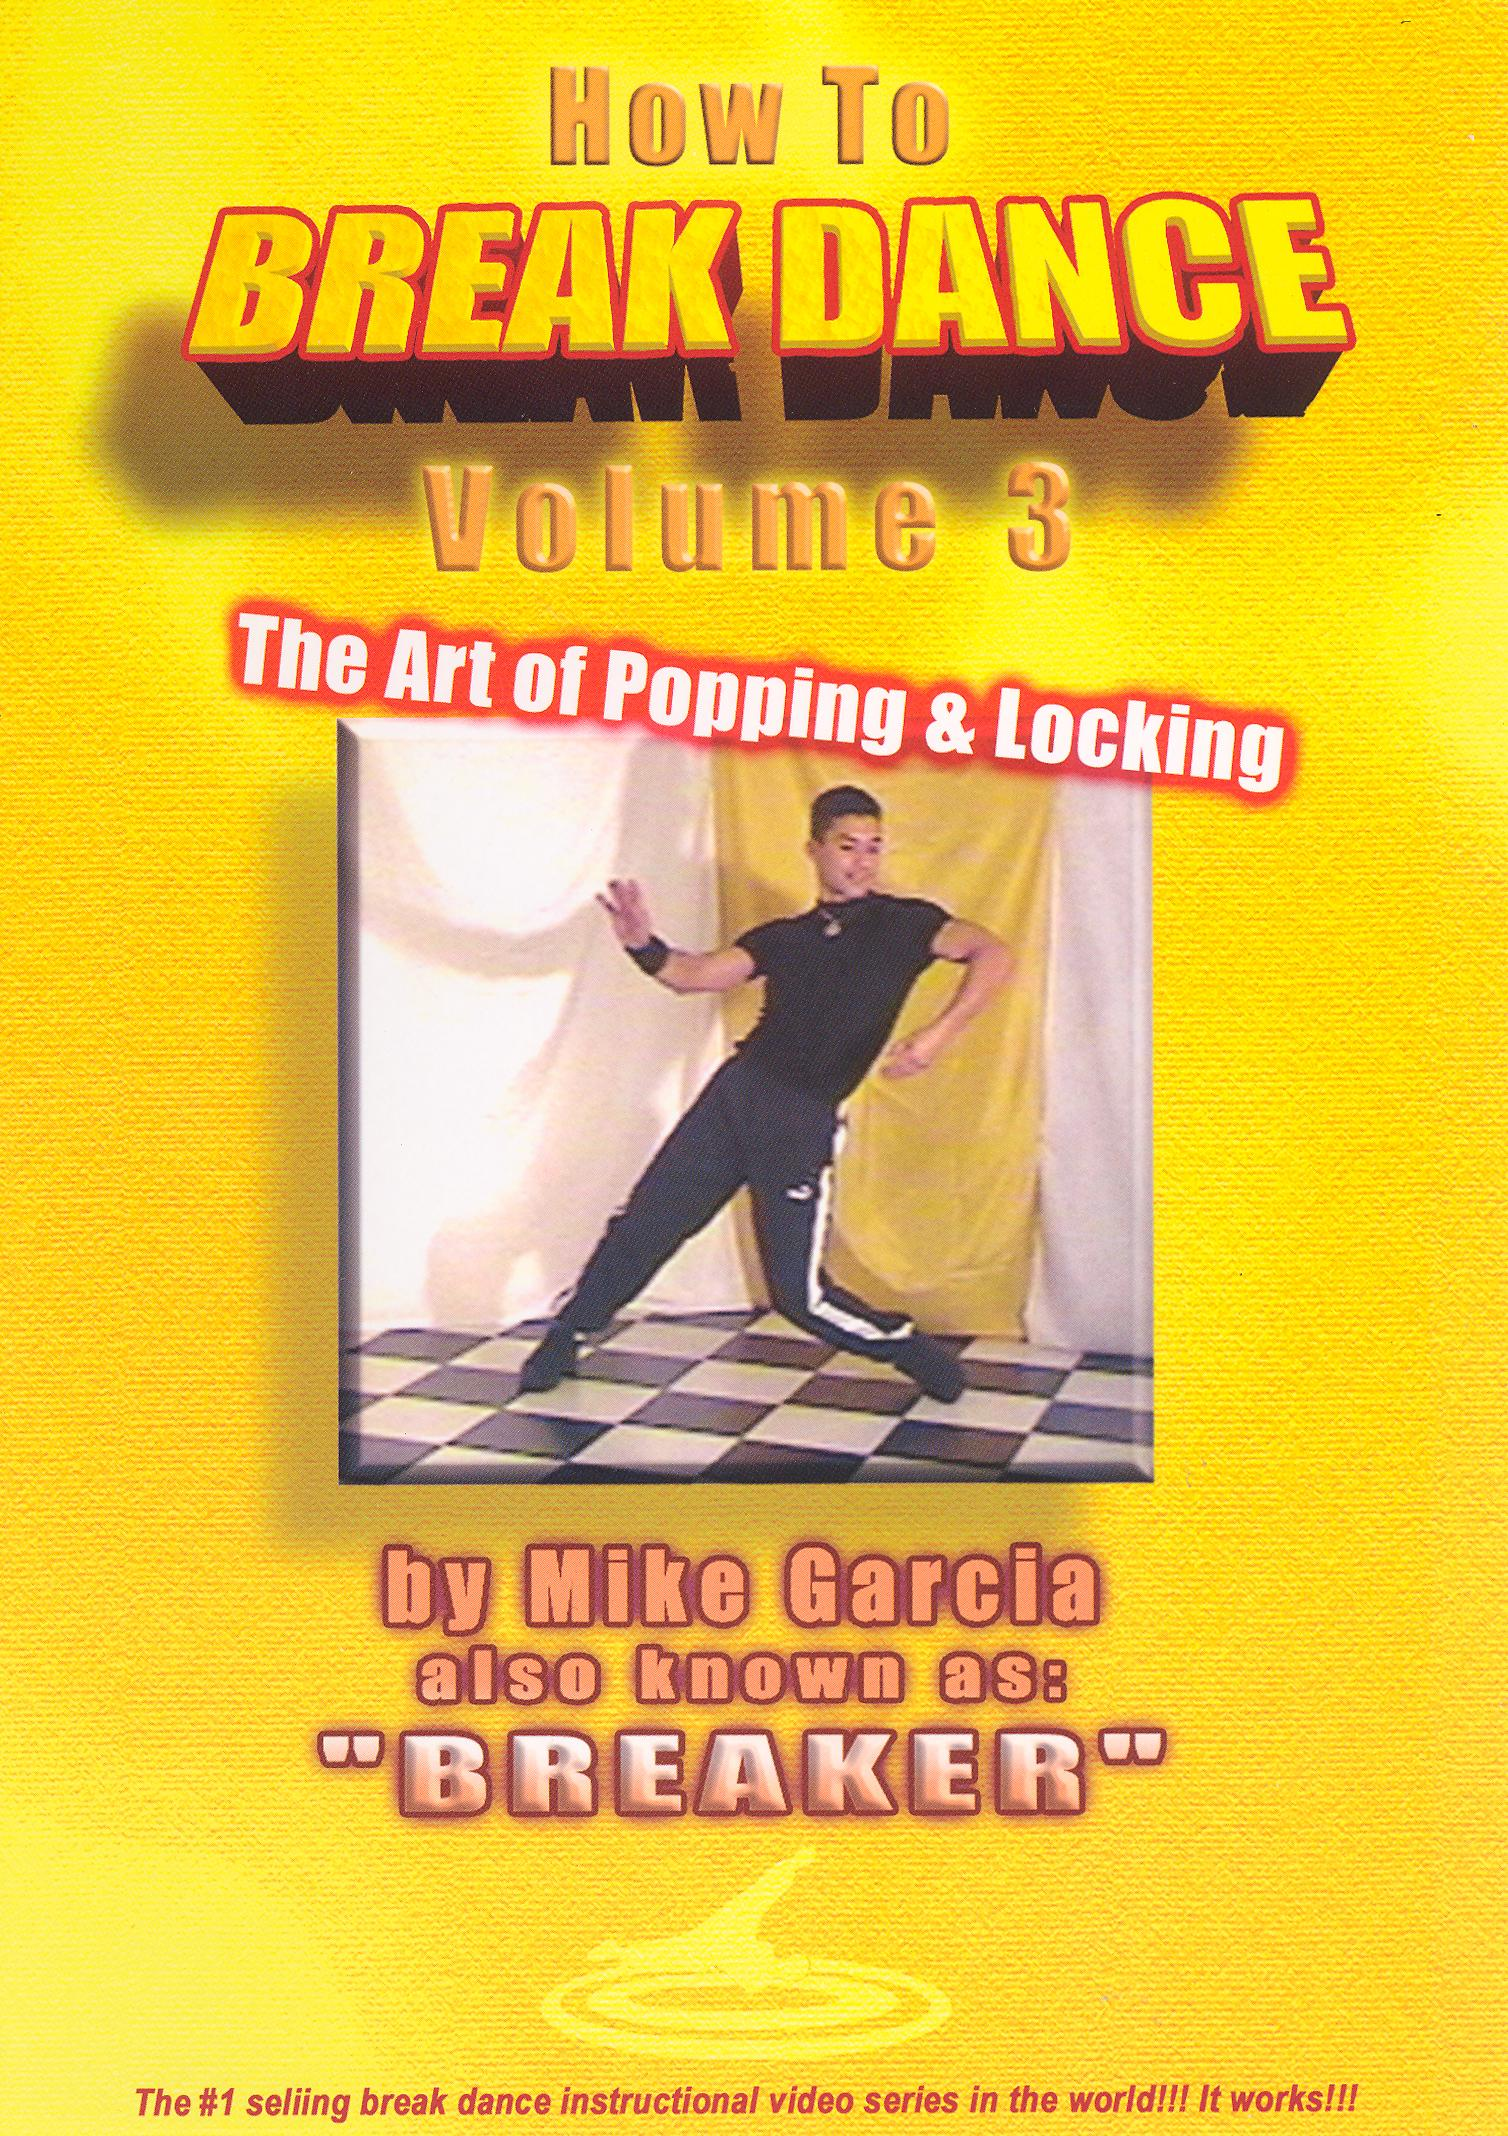 How to Breakdance, Vol. 3